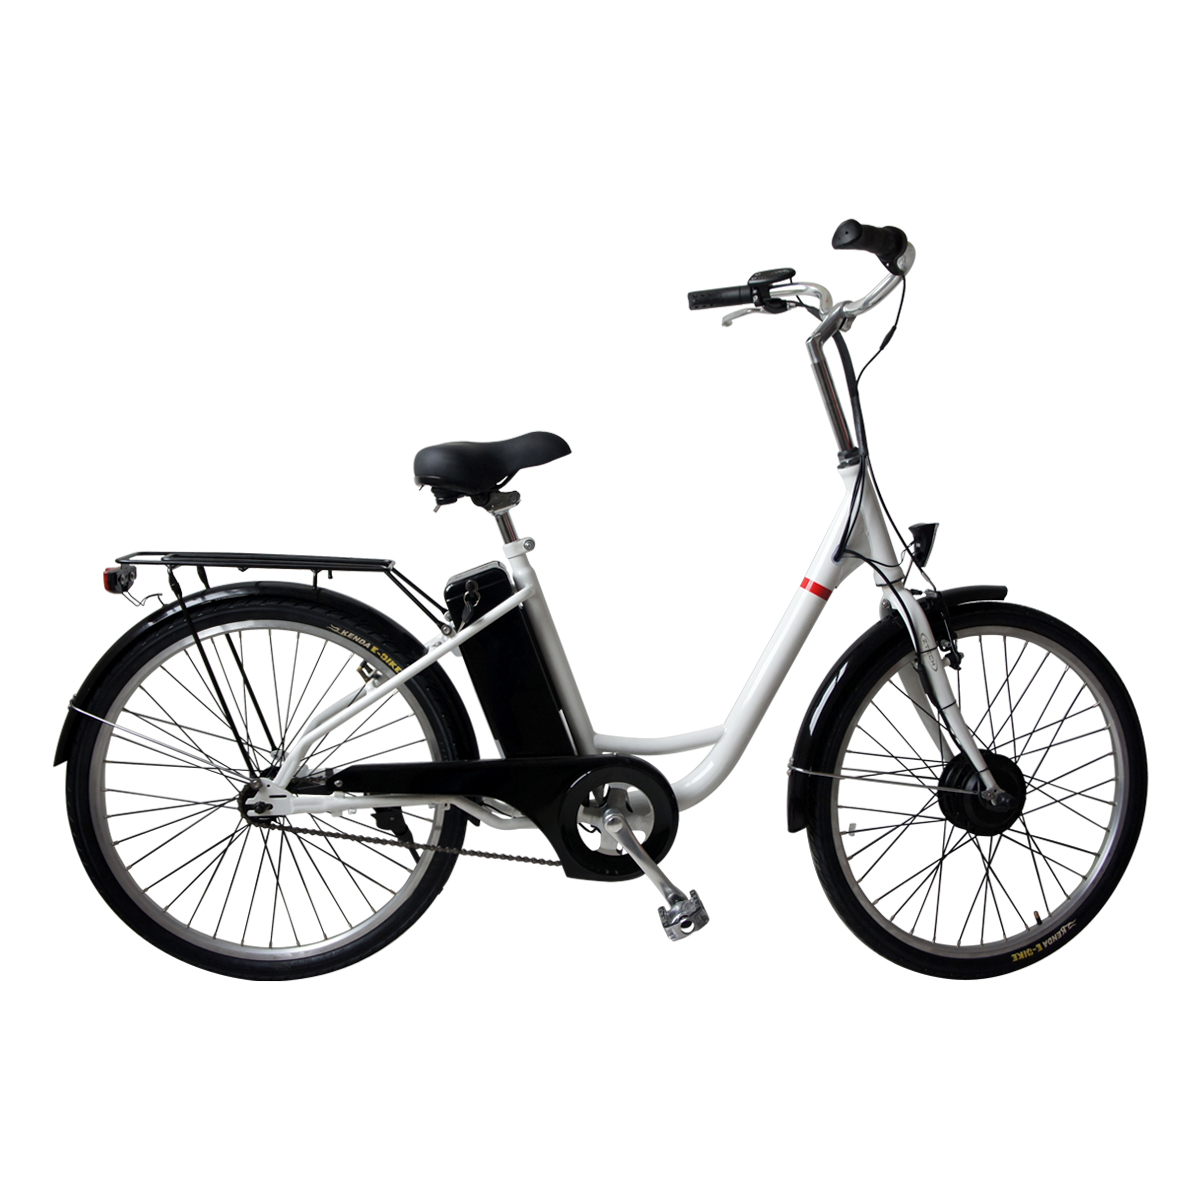 VTUVIA B26 Cheaper Electric Bicycle 350w